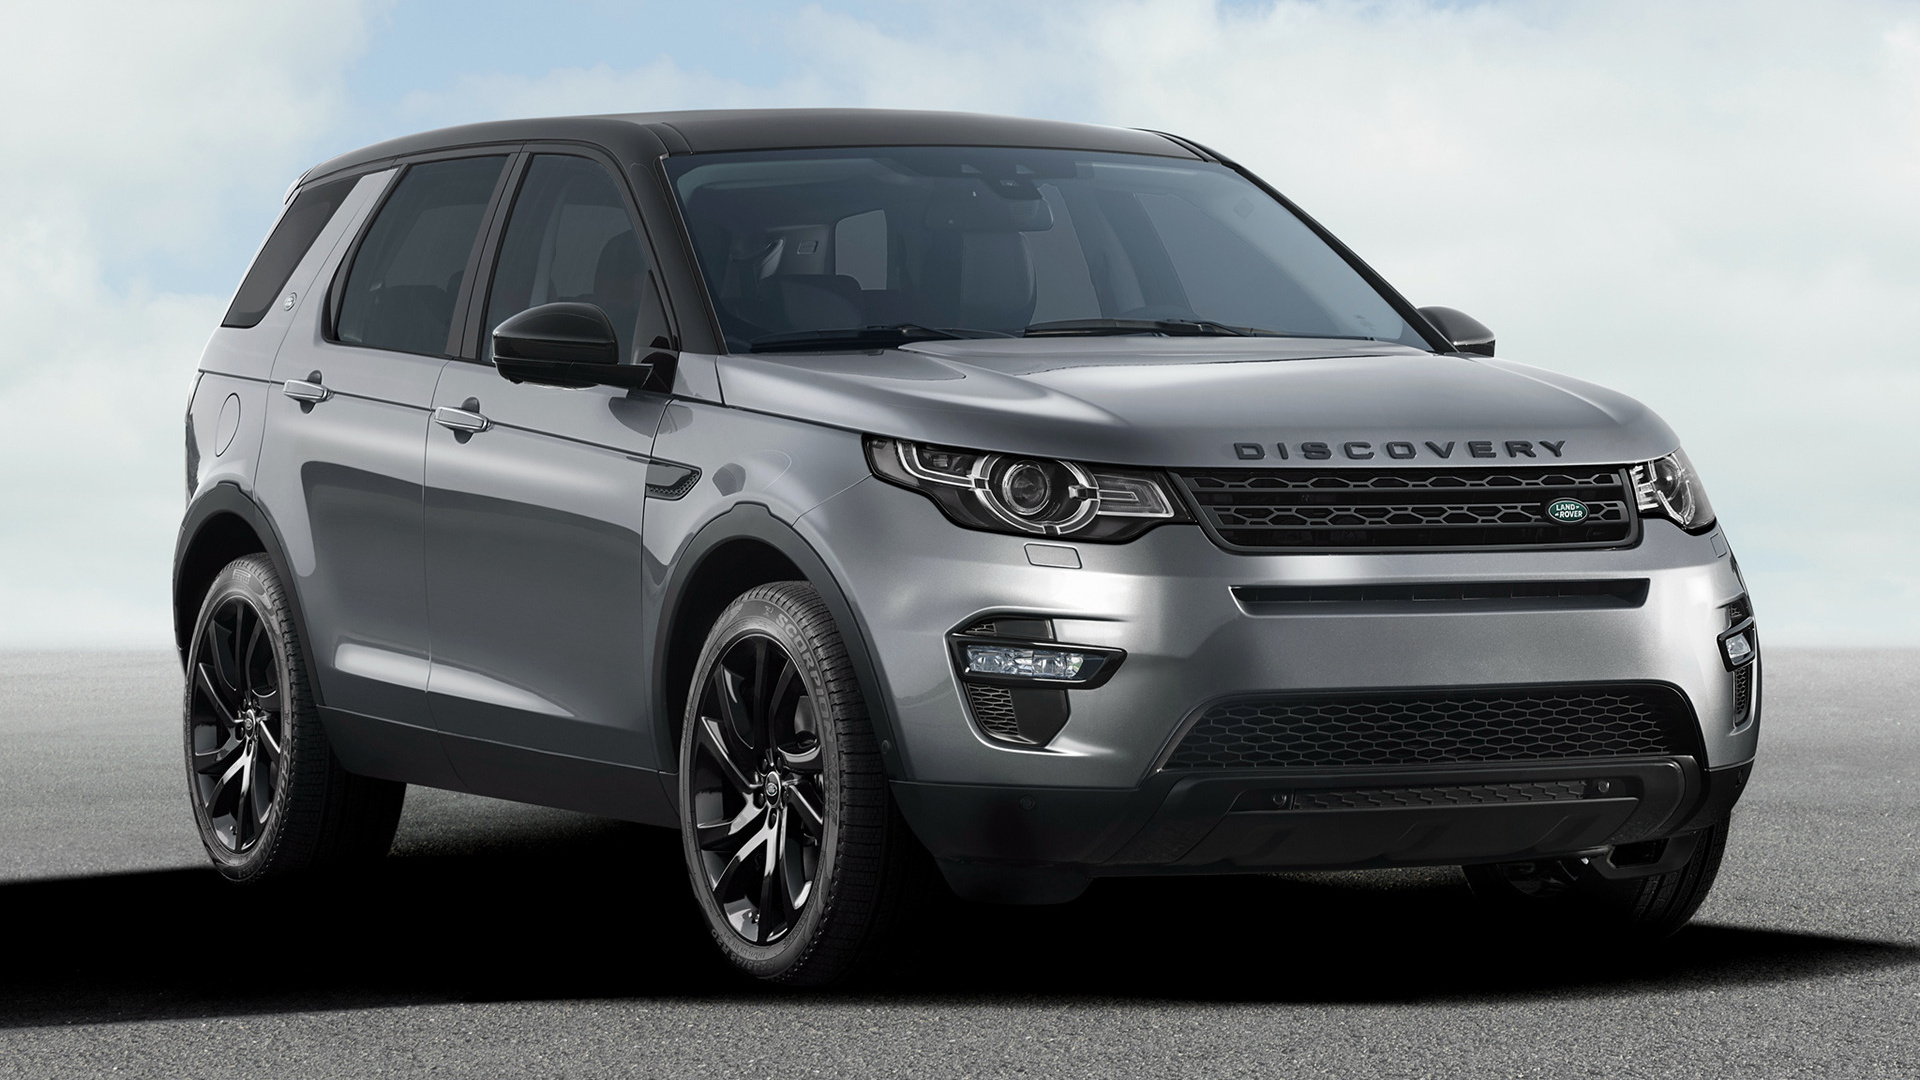 Land Rover Discovery Sport HSE Luxury Black Design Pack 2015